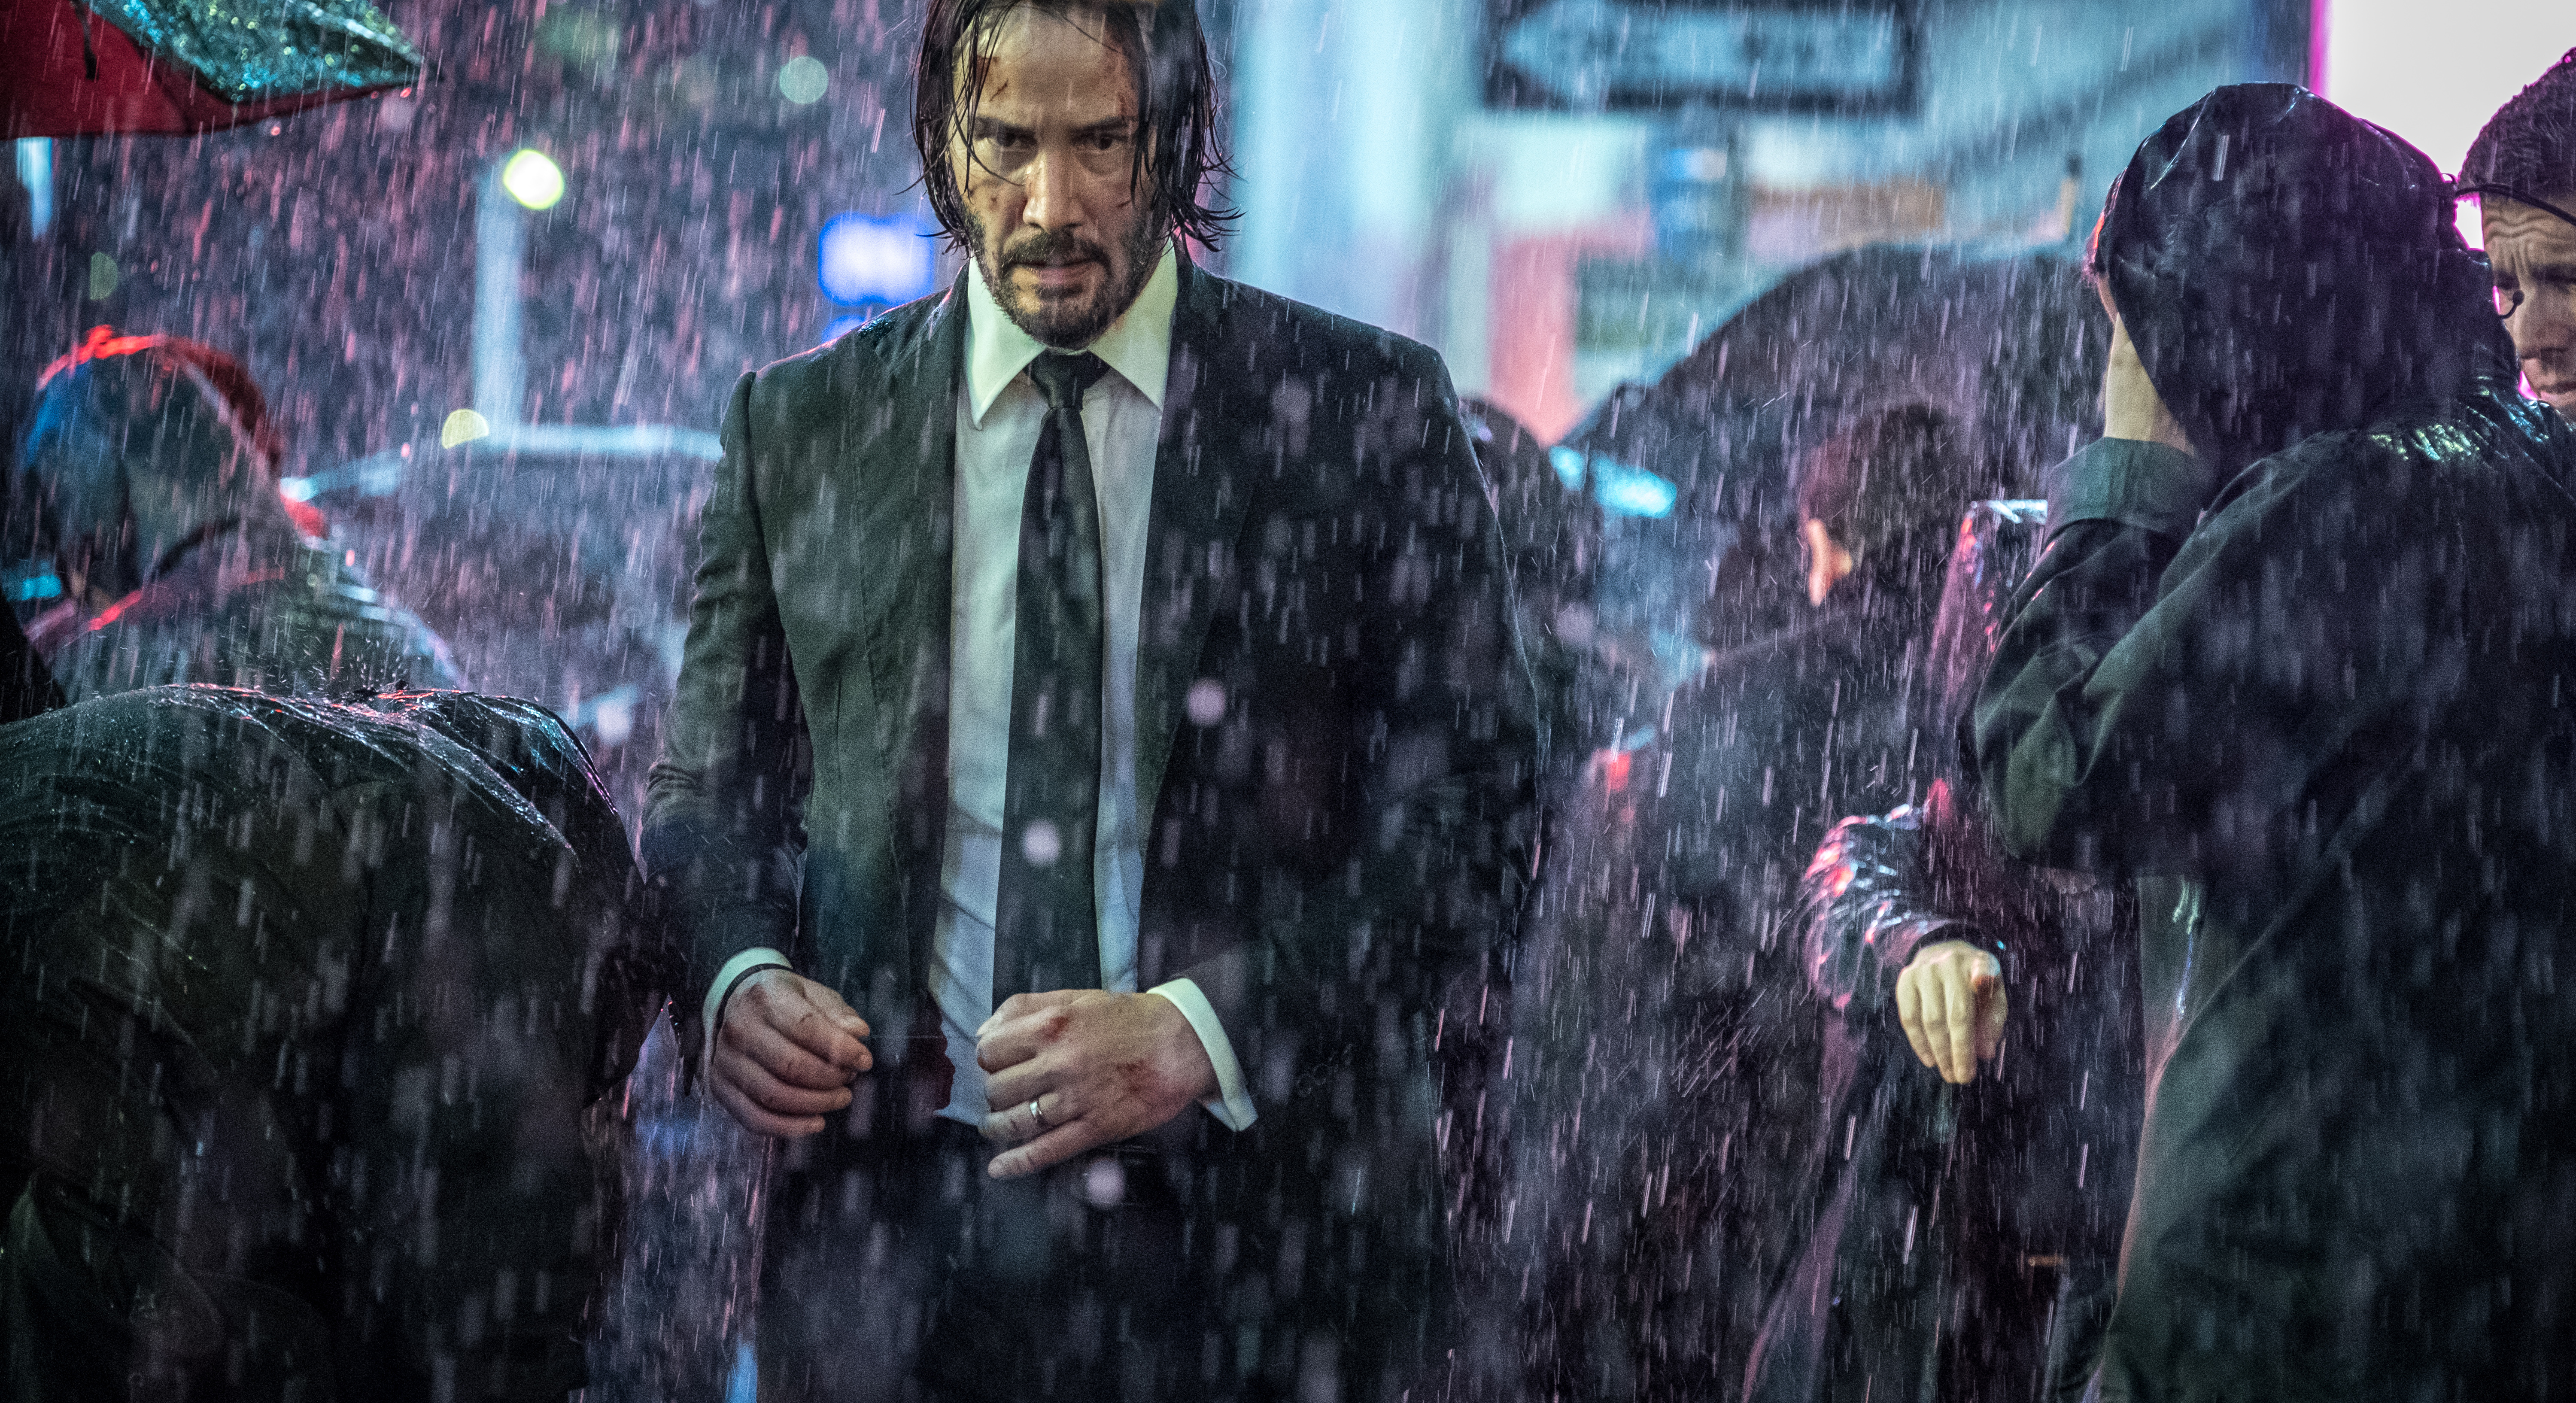 John Wick: Chapter 3' Spoilers, Ending Explained: How It